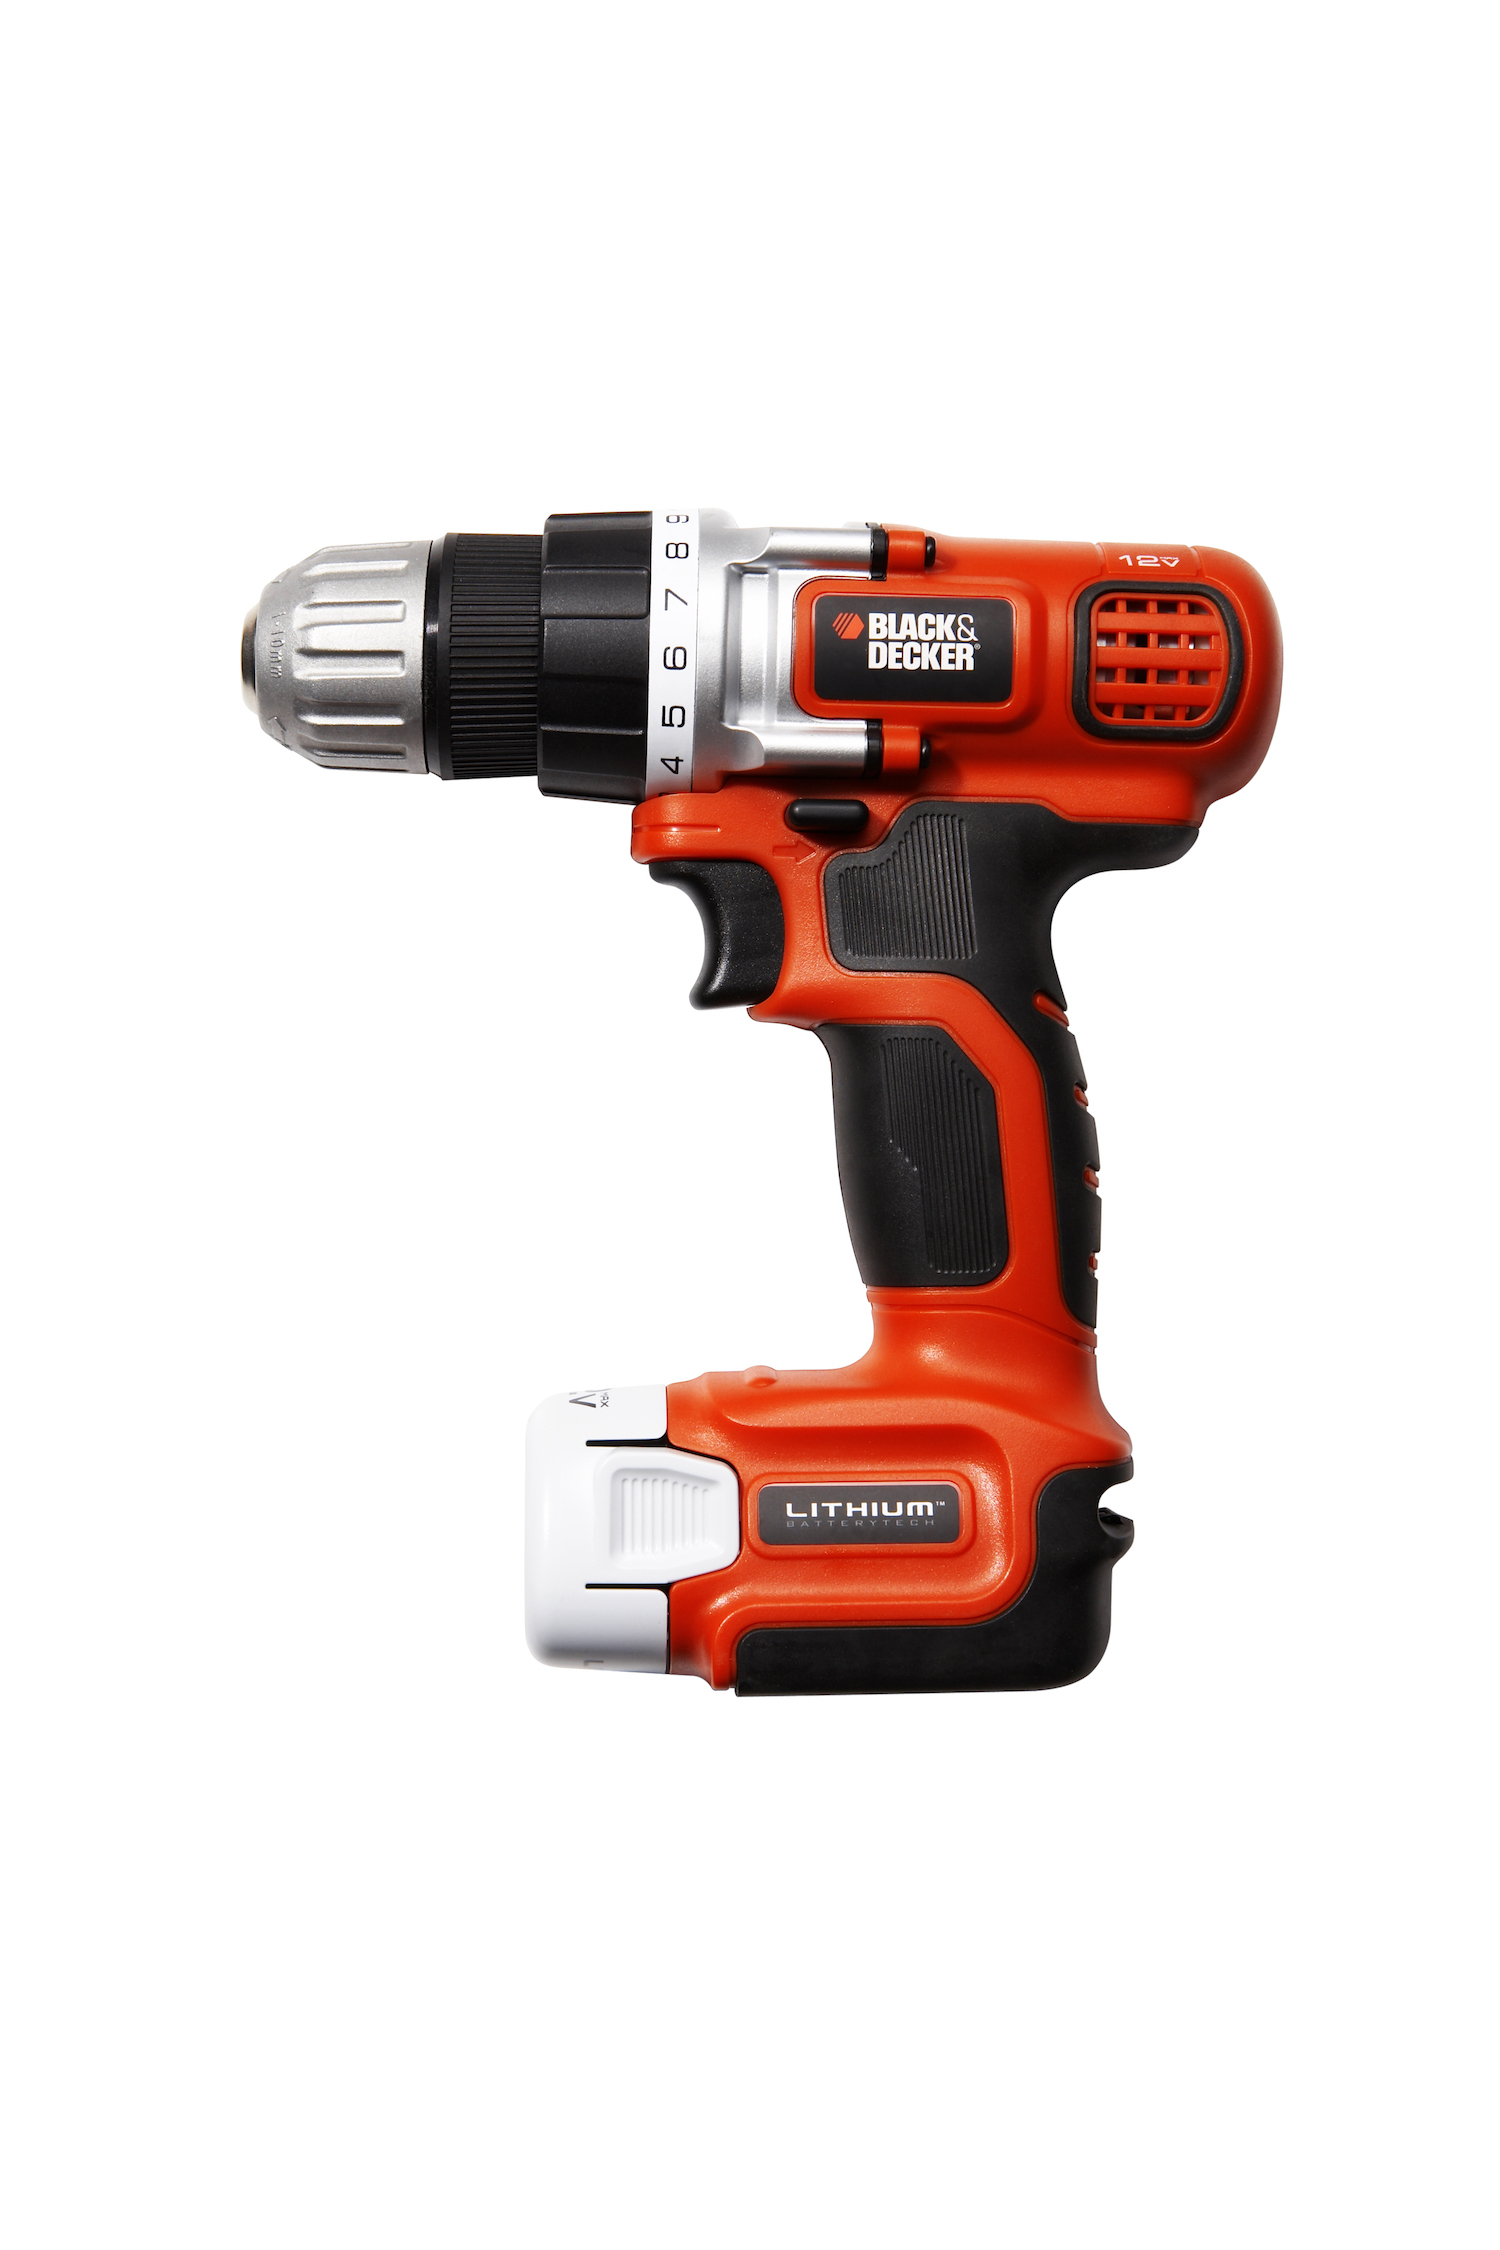 12-Volt Cordless Drills: We Test 13 of the Best